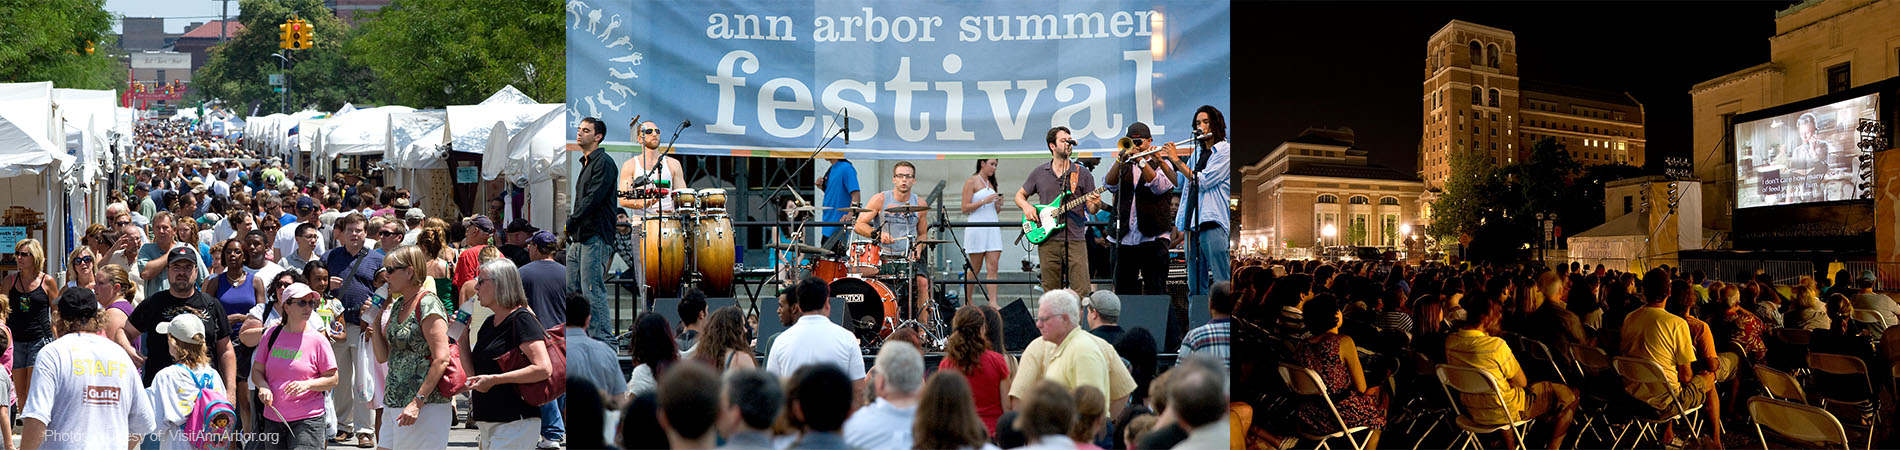 Ann Arbor Festivals and Fairs